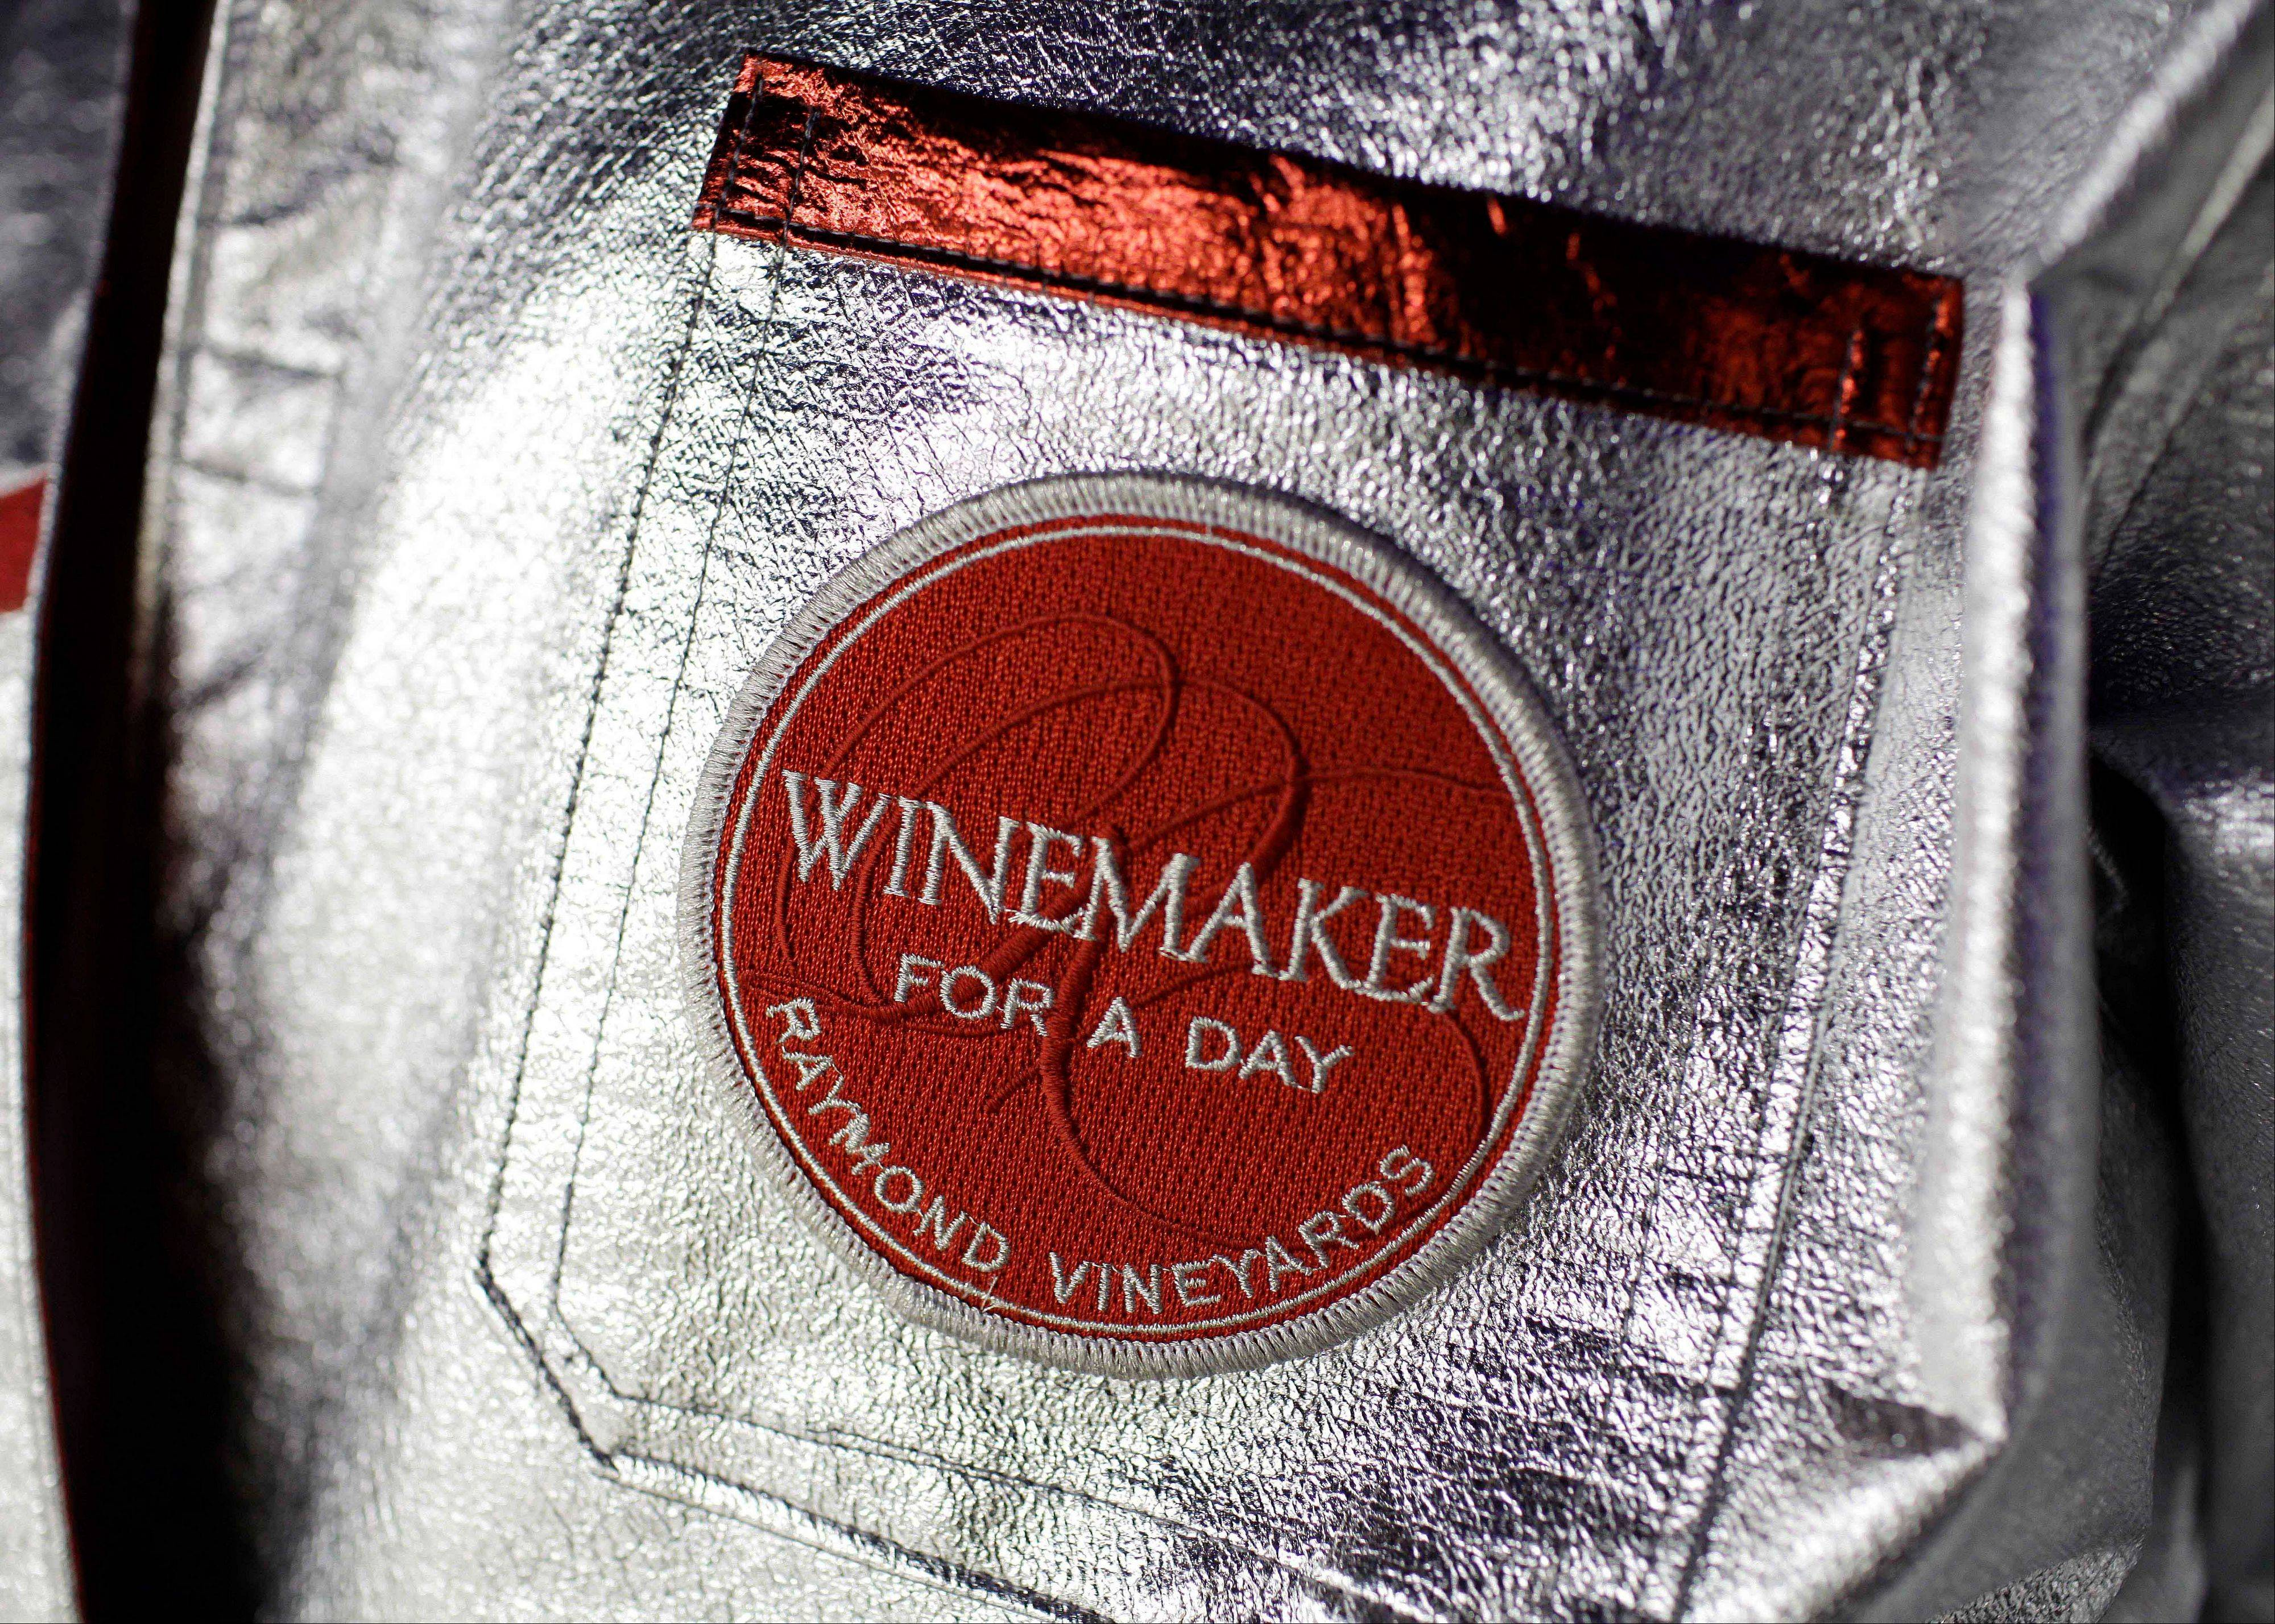 A patch on the lab coat of a participant taking part in the winemaker-for-a-day program at Raymond Vineyards.